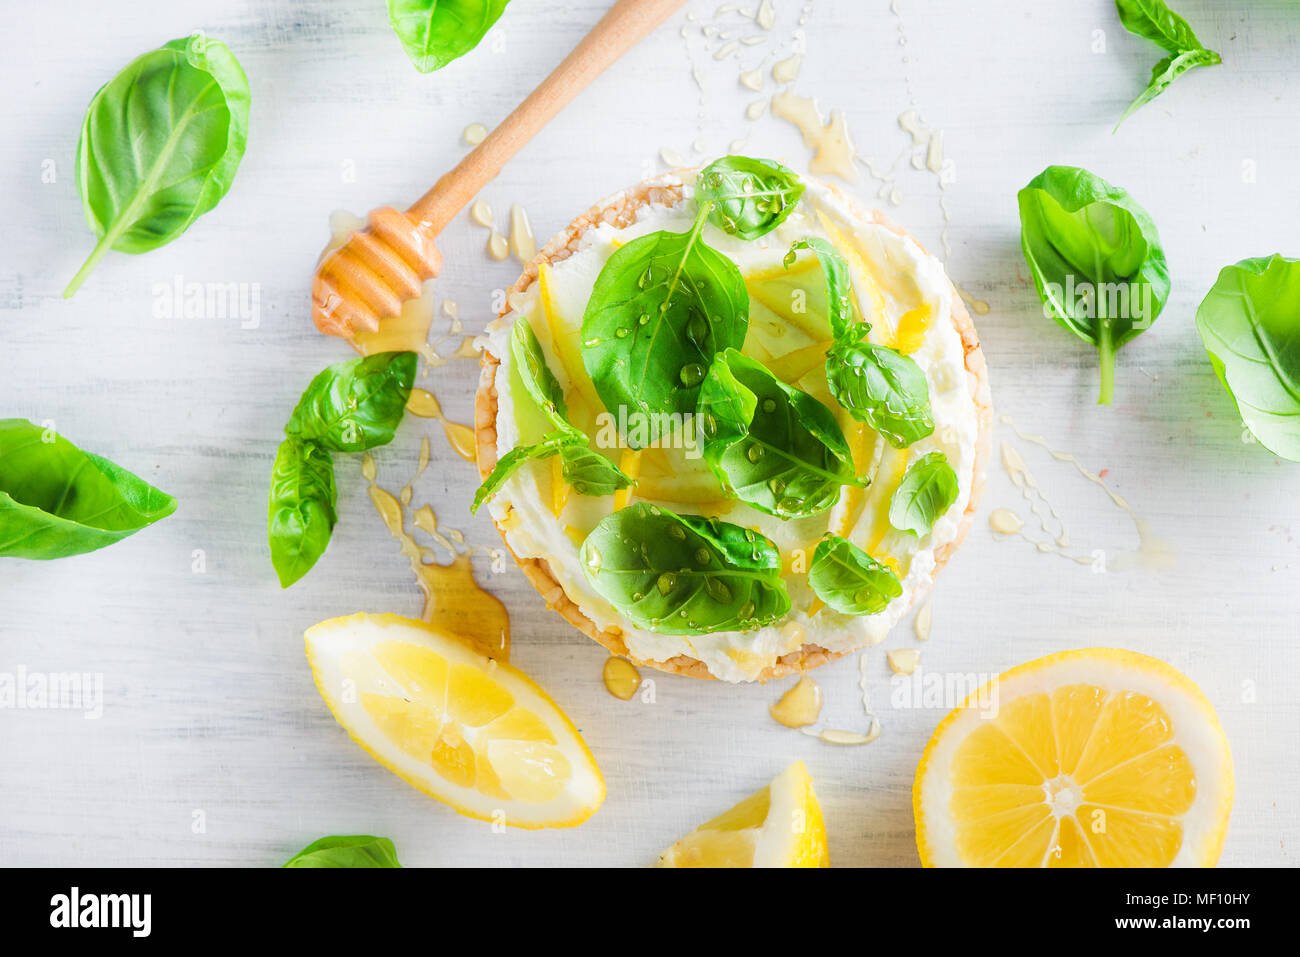 Healthy snack with crisp bread, lemon zest, honey and basil. Easy appetizer recipe. - Stock Image